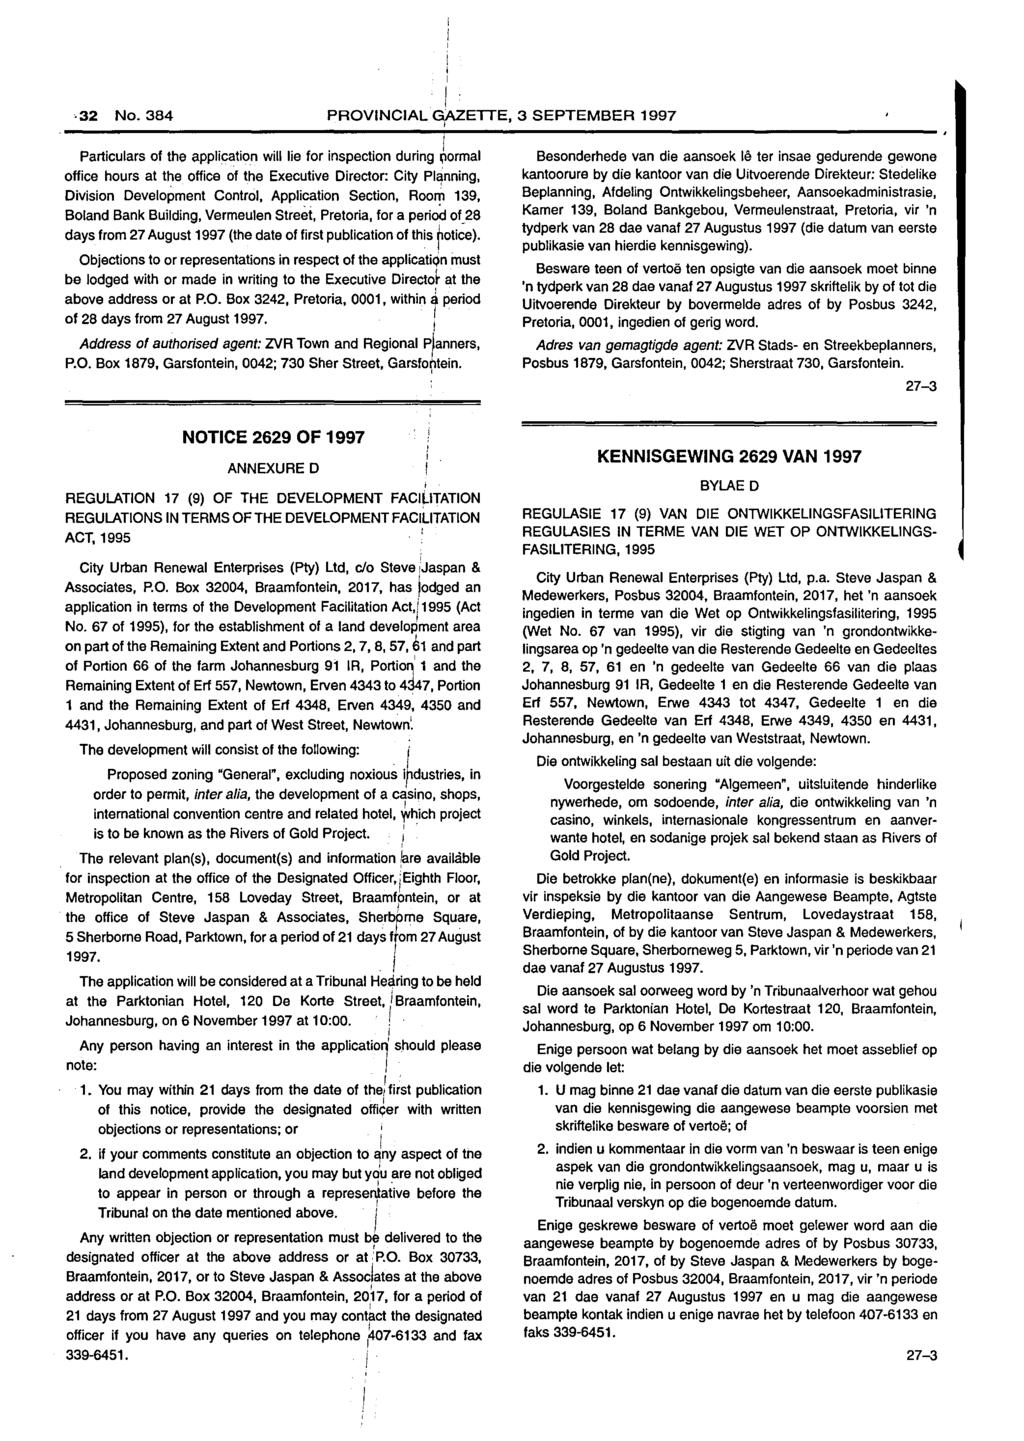 I 32 No. PROVINCIAL G,AZETTE, 3 SEPTEMBER 1997 Particulars of the application will lie for inspection during ~ormal office hours at the office of the Executive Director: City Planning,.